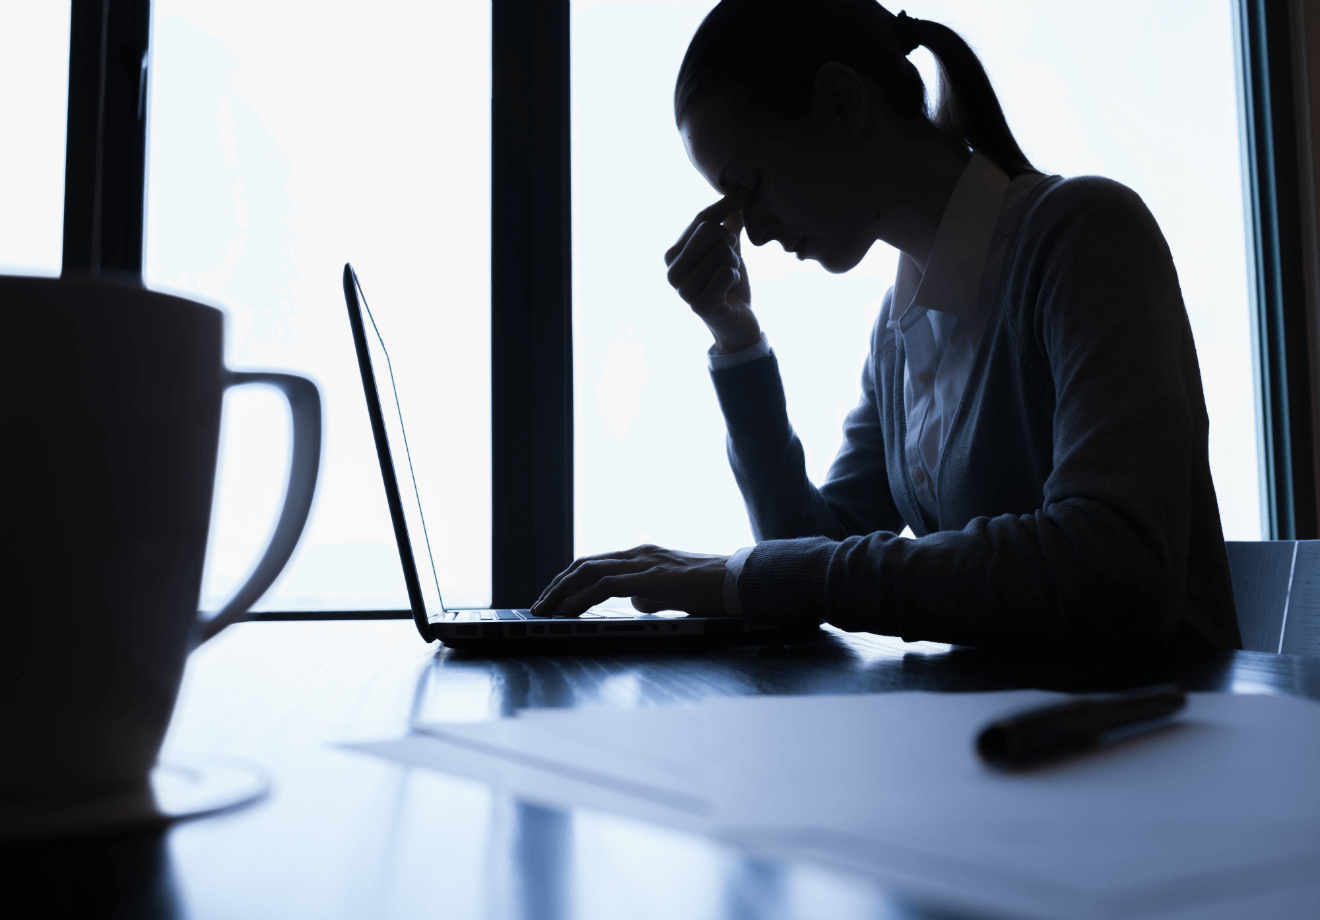 depressed woman working on laptop coffee mug